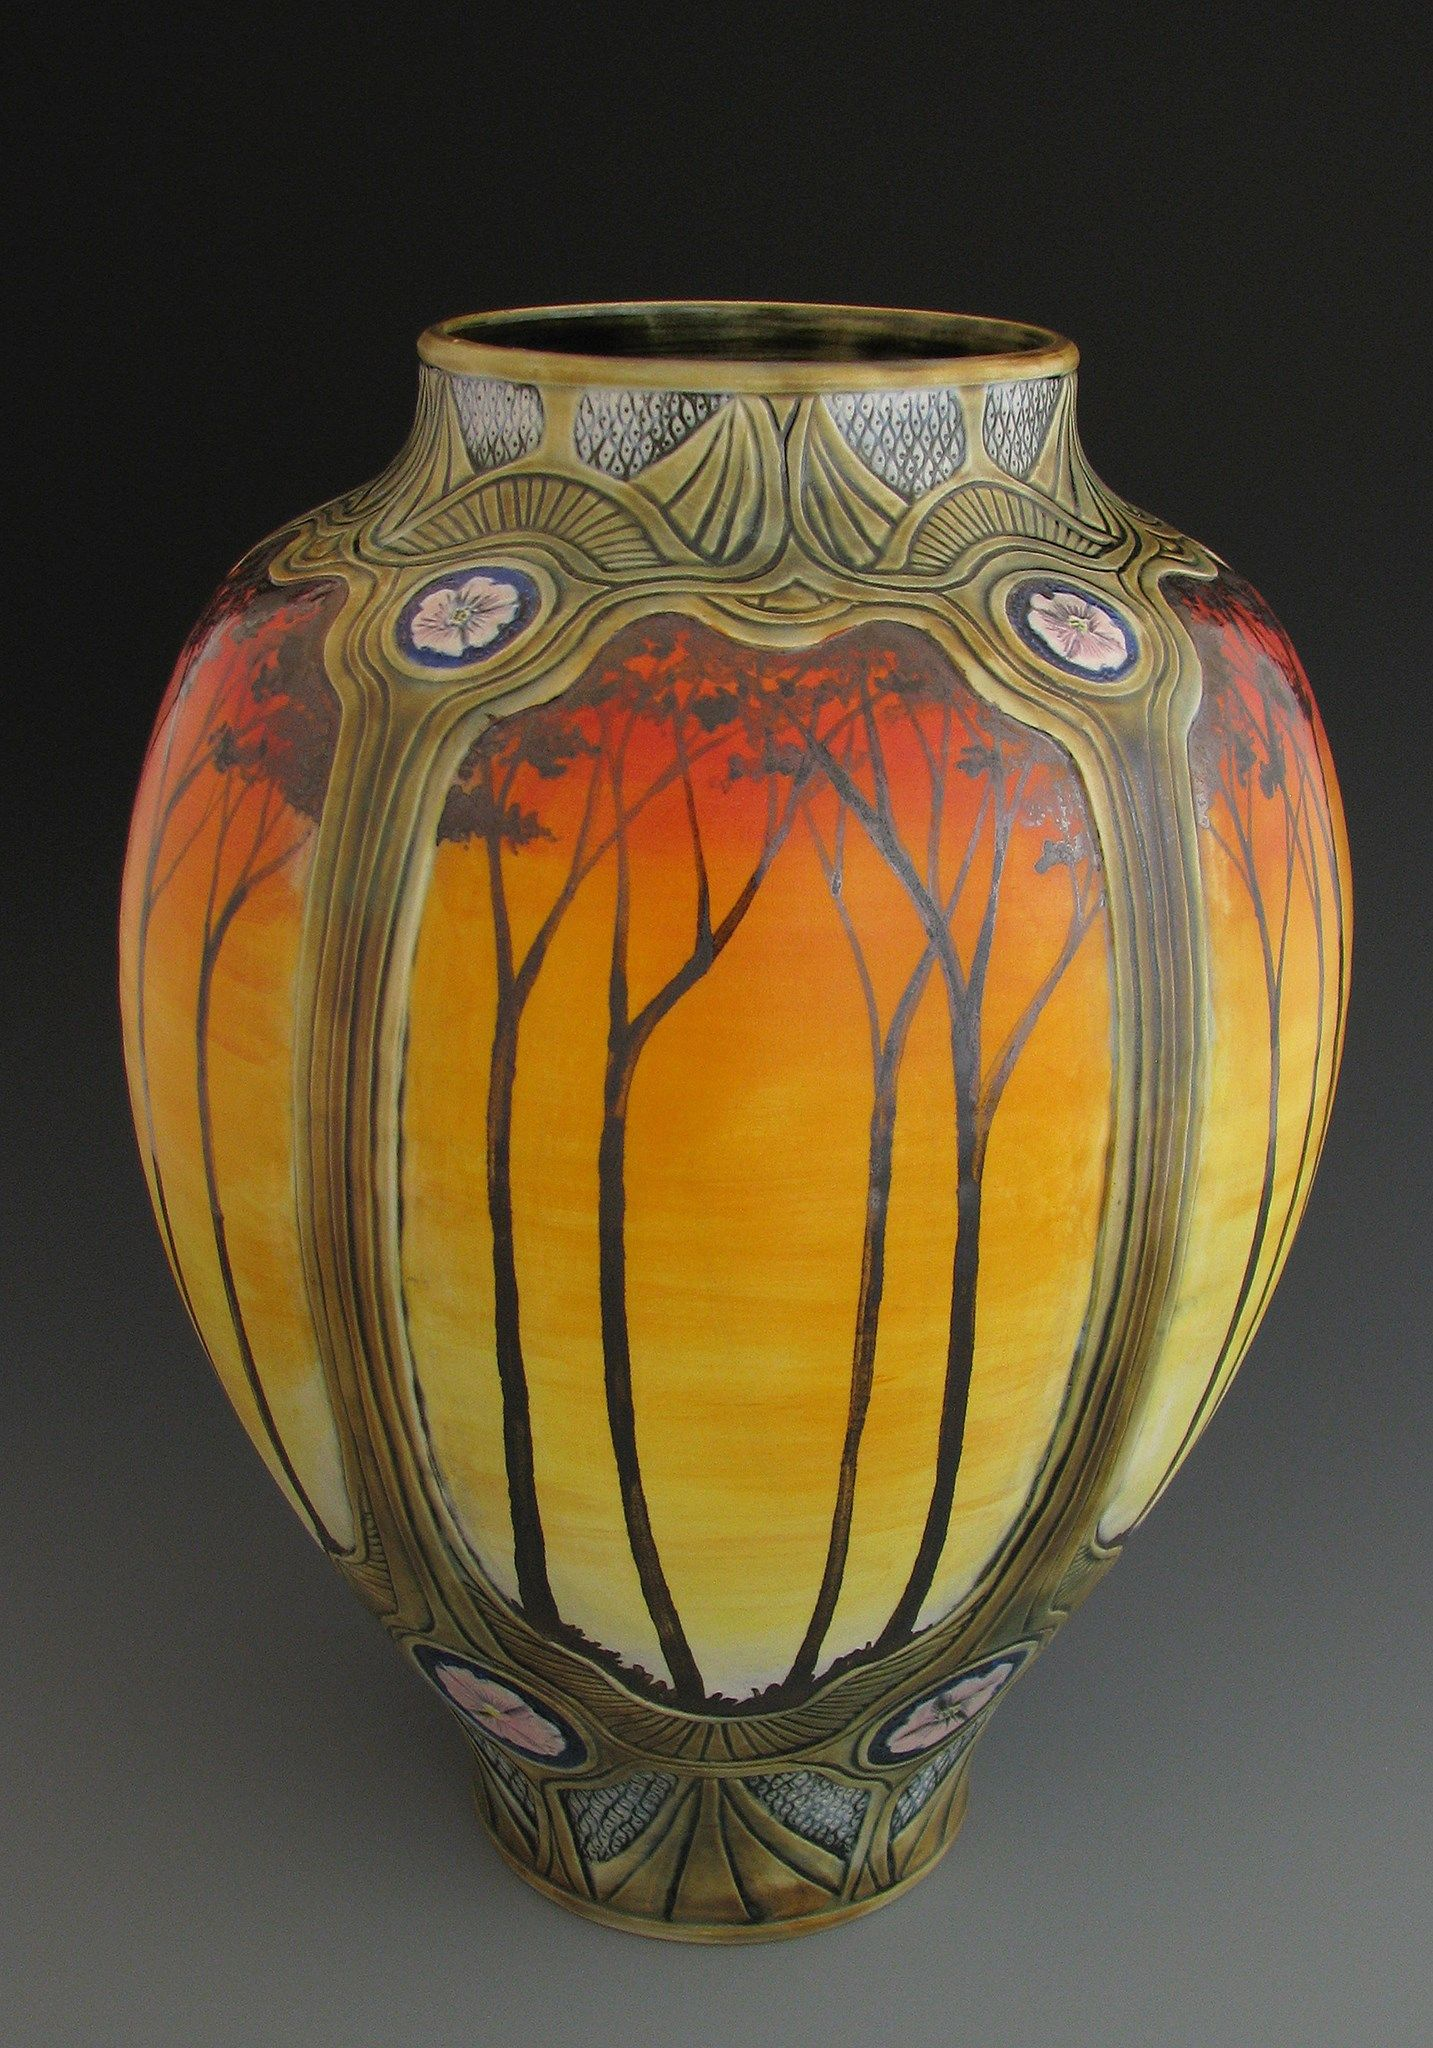 Calmwater designs stephanie young sunset glazes trees calmwater designs stephanie young sunset glazes trees capca artistic tilepottery vasepottery reviewsmspy